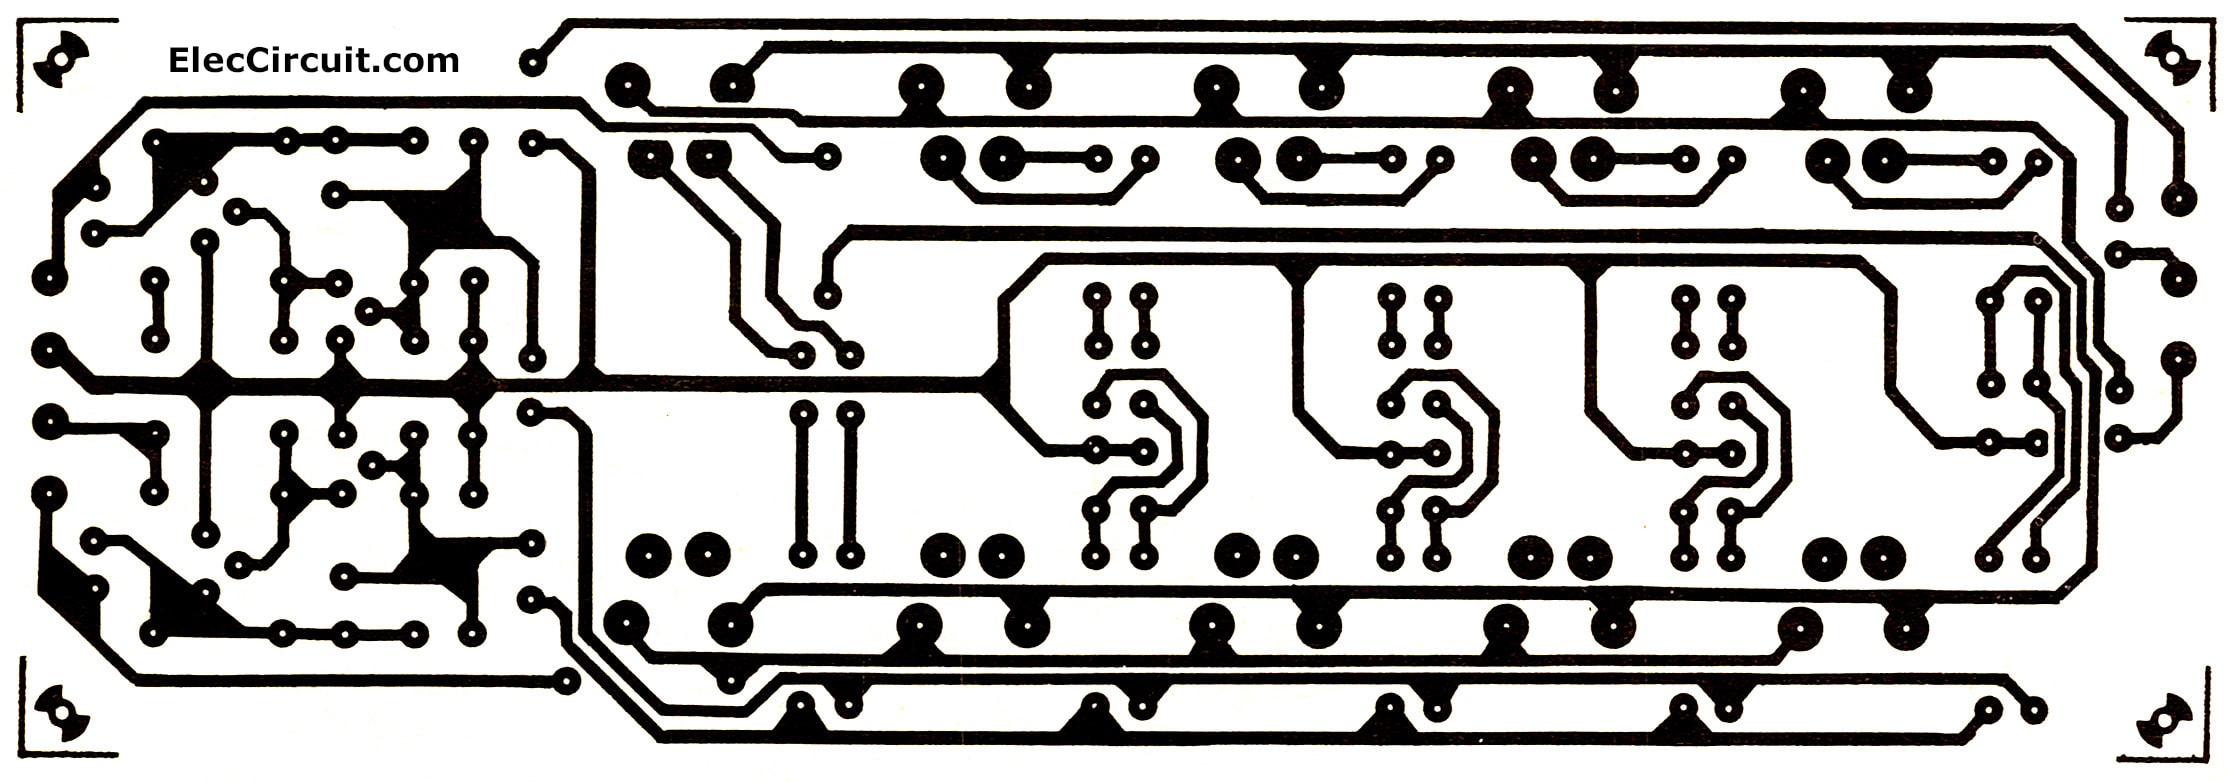 Graphic equalizer circuit using transistors